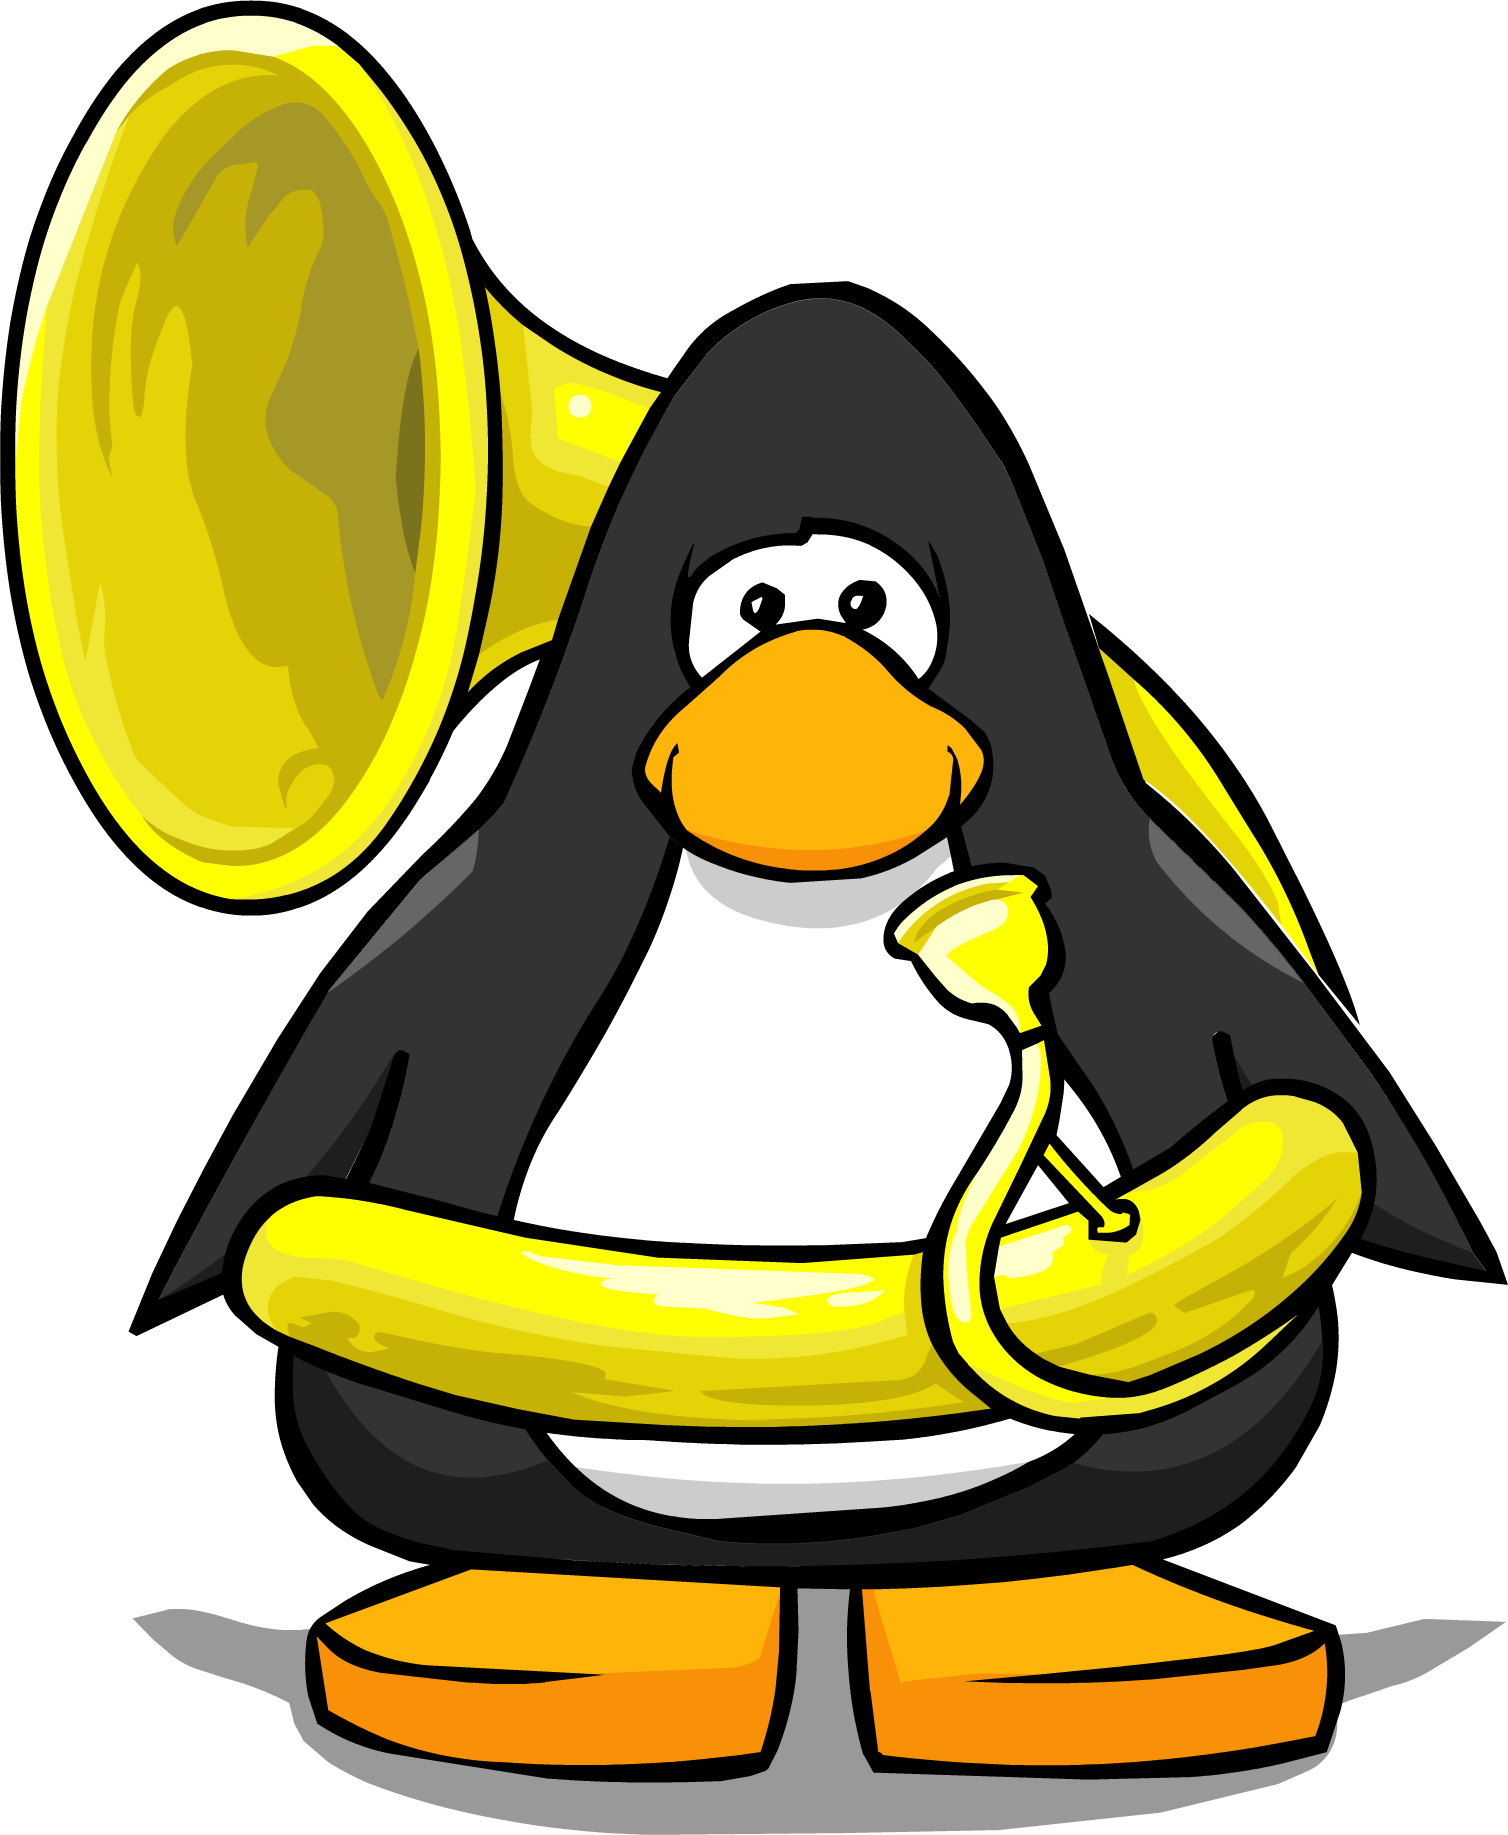 Image - Tuba picture.png - Club Penguin Wiki - The free, editable ...